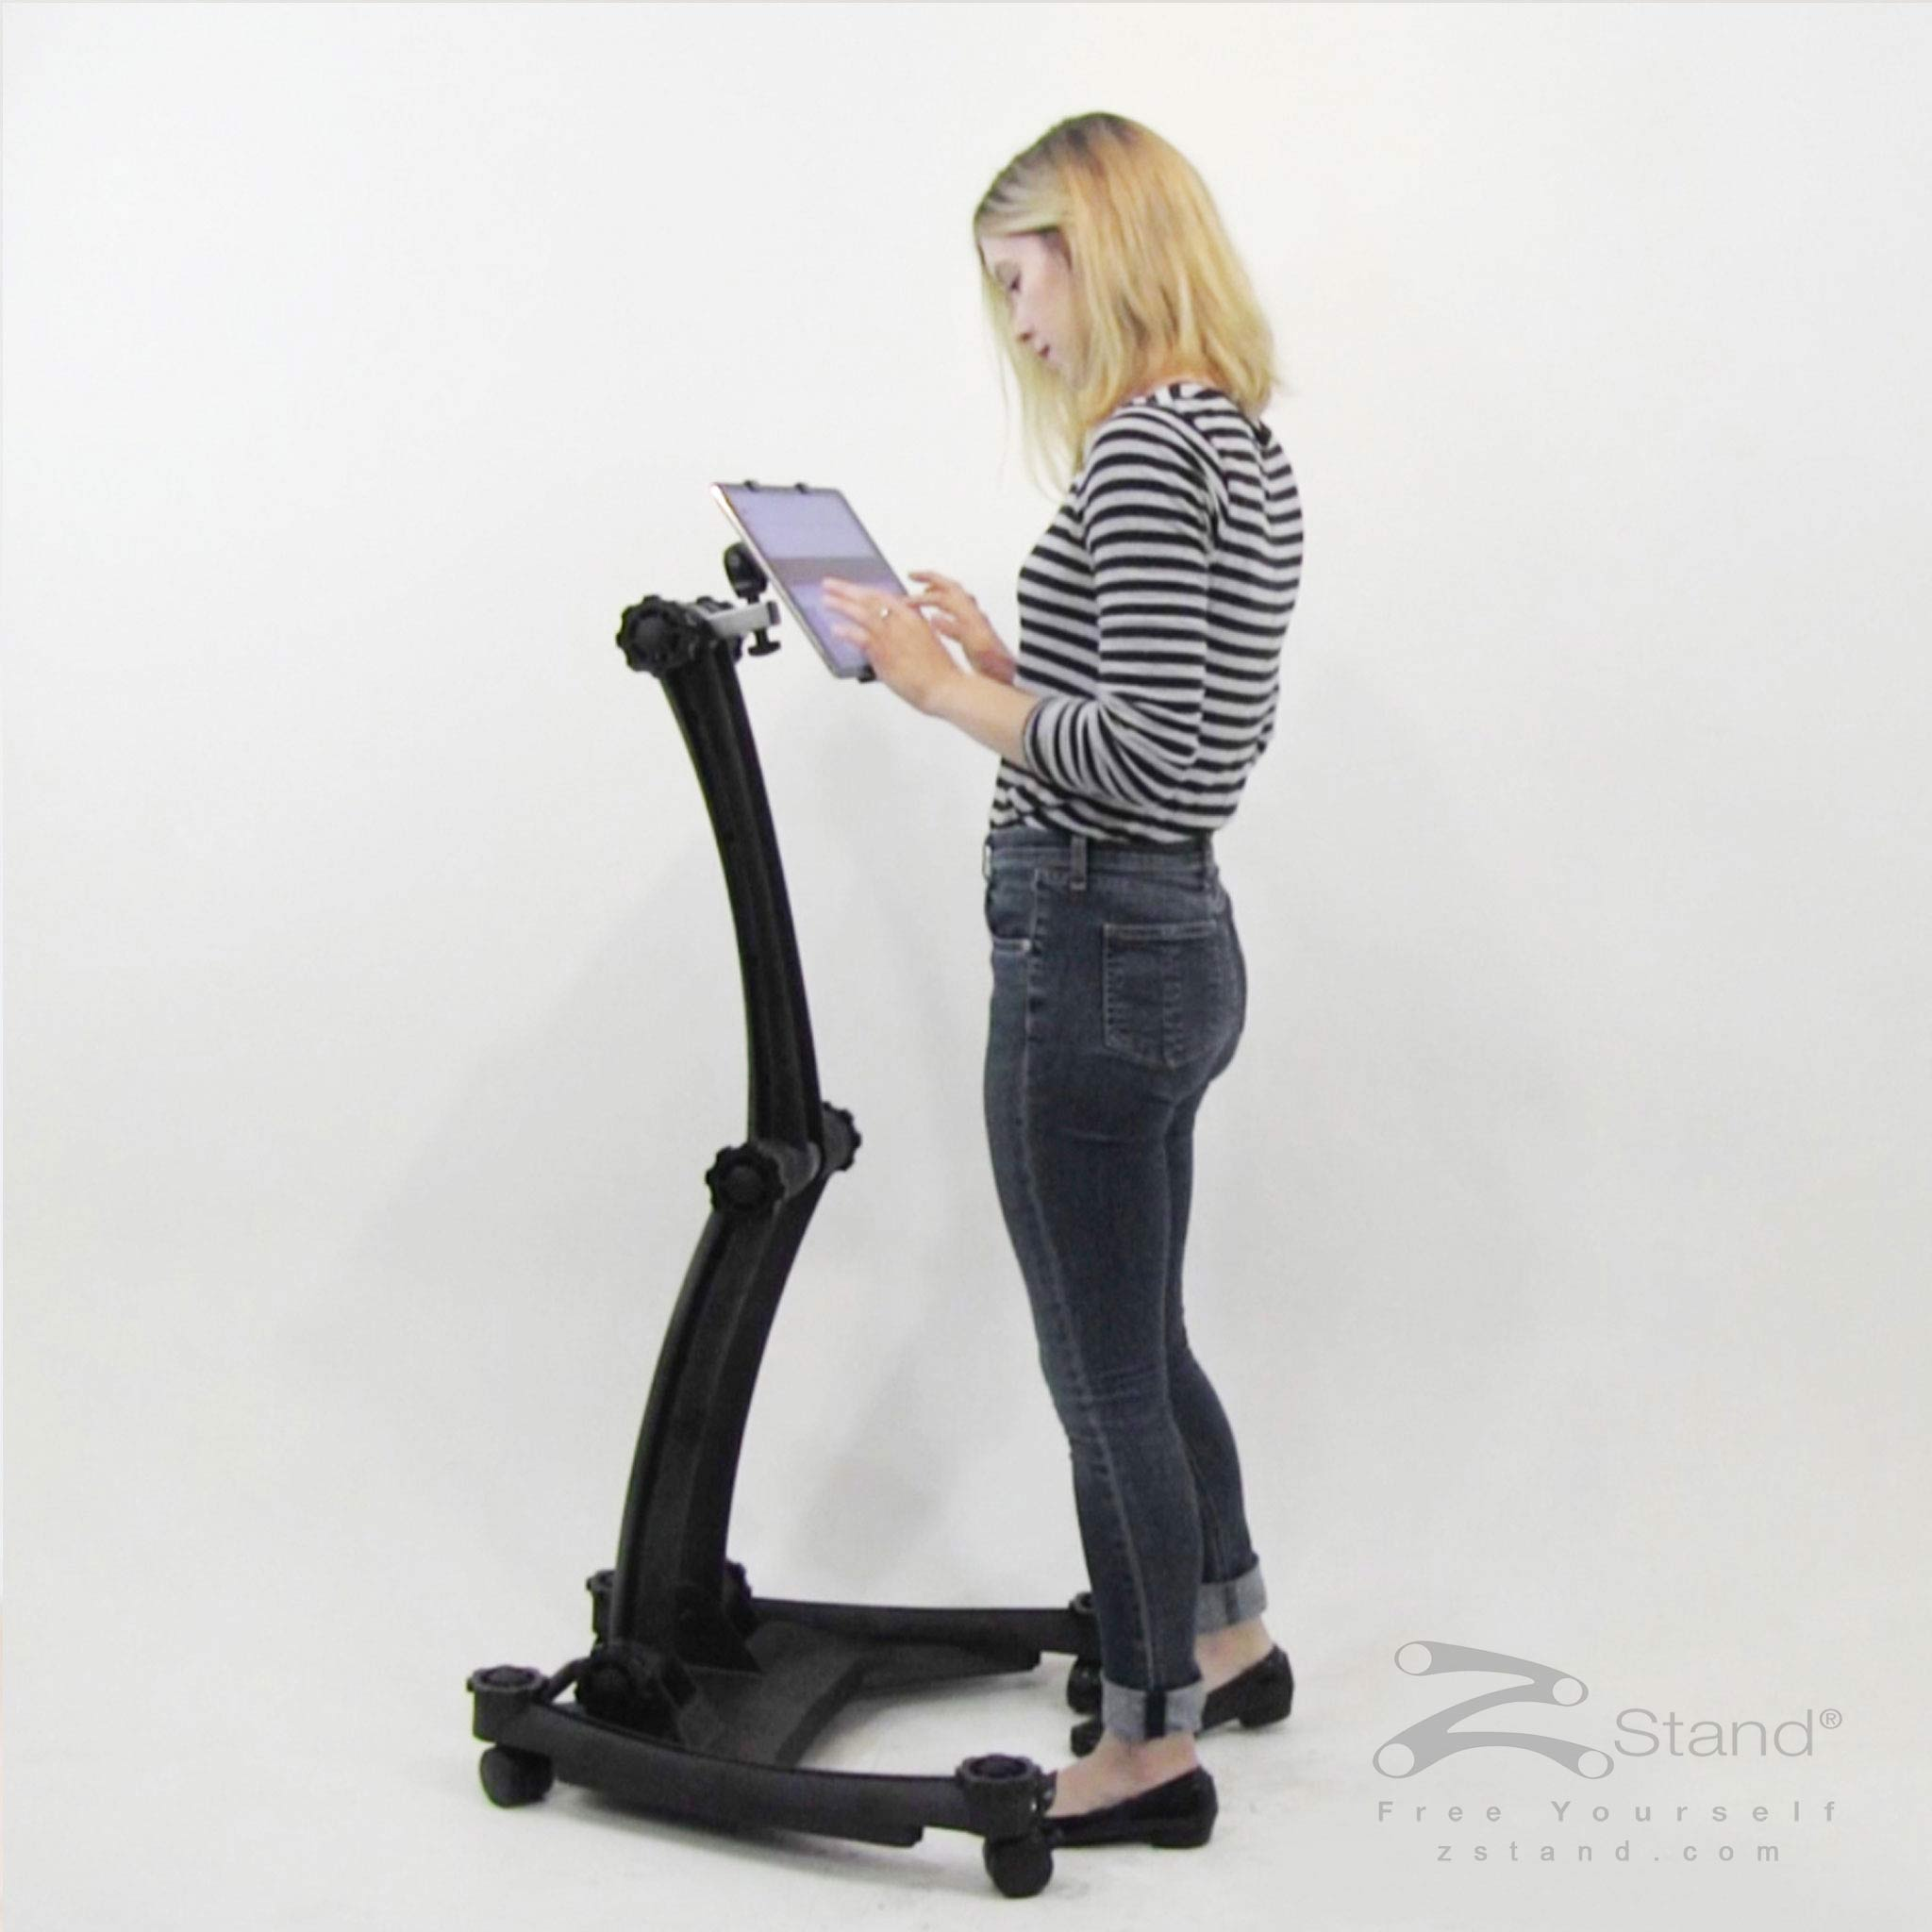 Image of a woman standing using her tablet hands free with the ZStand Sportster.